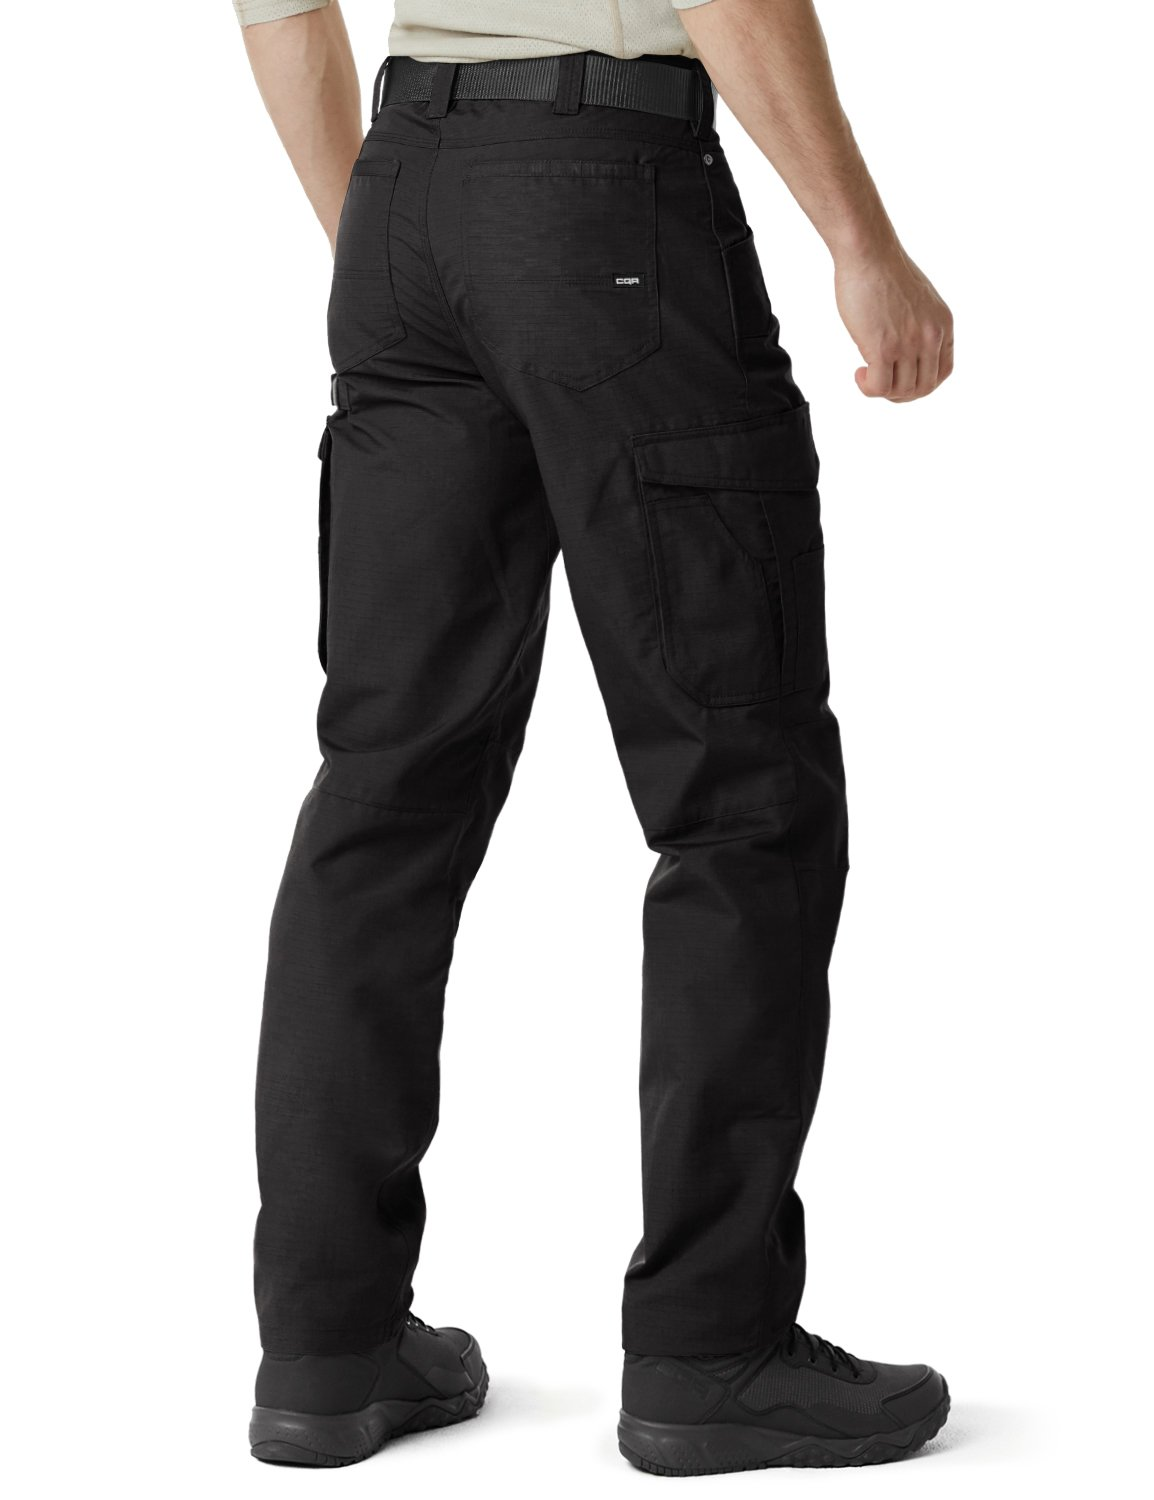 CQR CQ-TWP302-BLK_38W/34L Men's Operator Rip-Stop Tactical Work Utility Pants EDC TWP302 by CQR (Image #2)